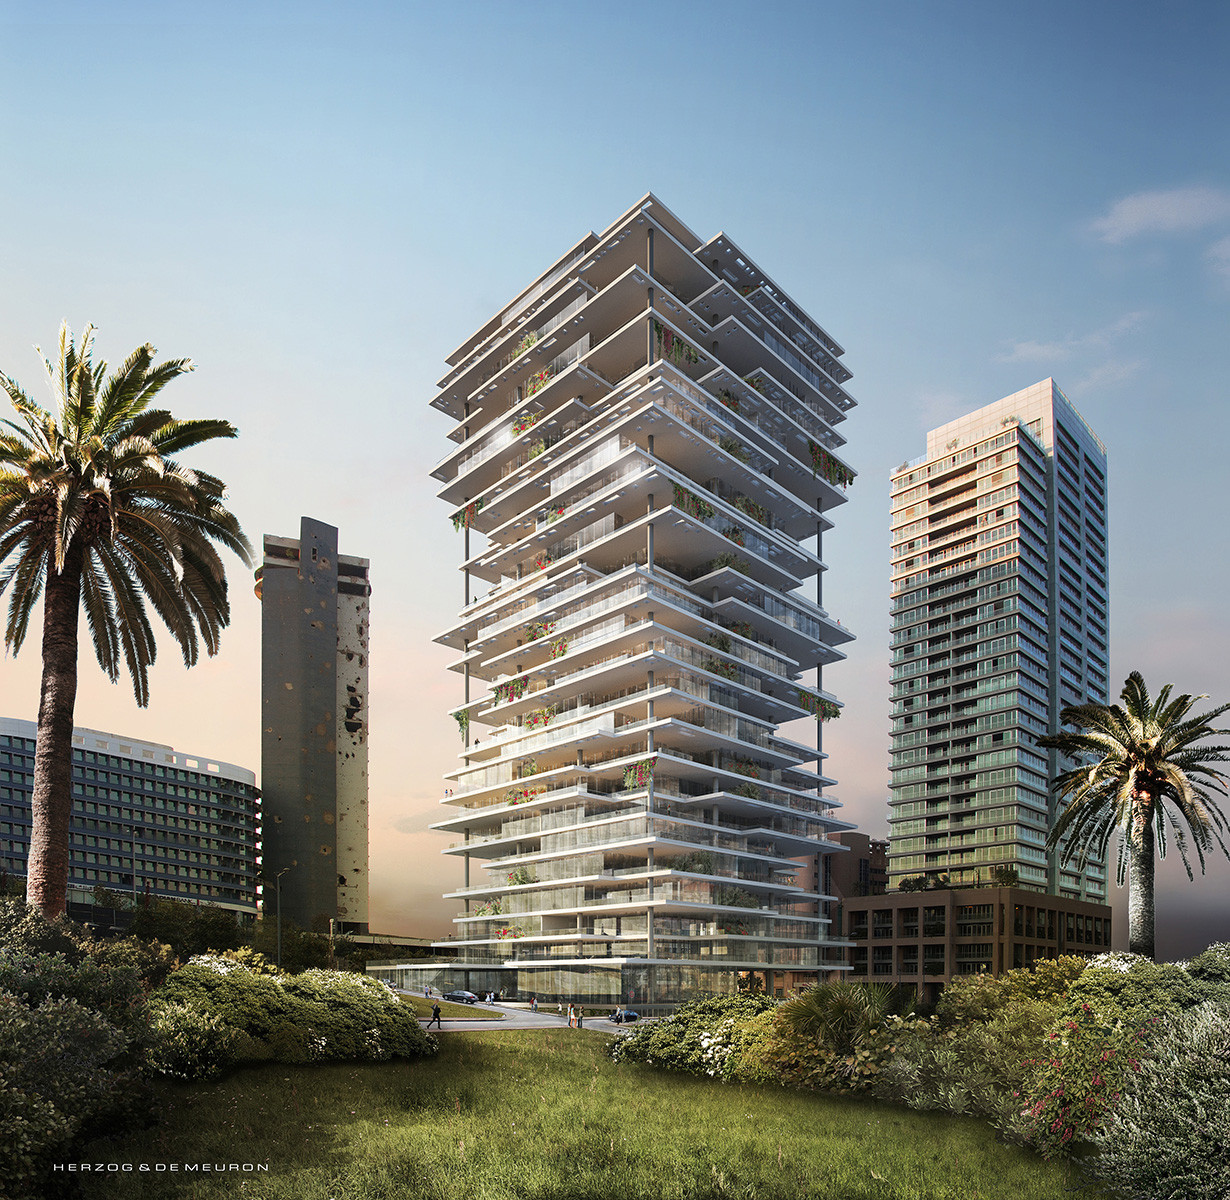 Beirut Terraces / Herzog & de Meuron, Courtesy of Benchmark